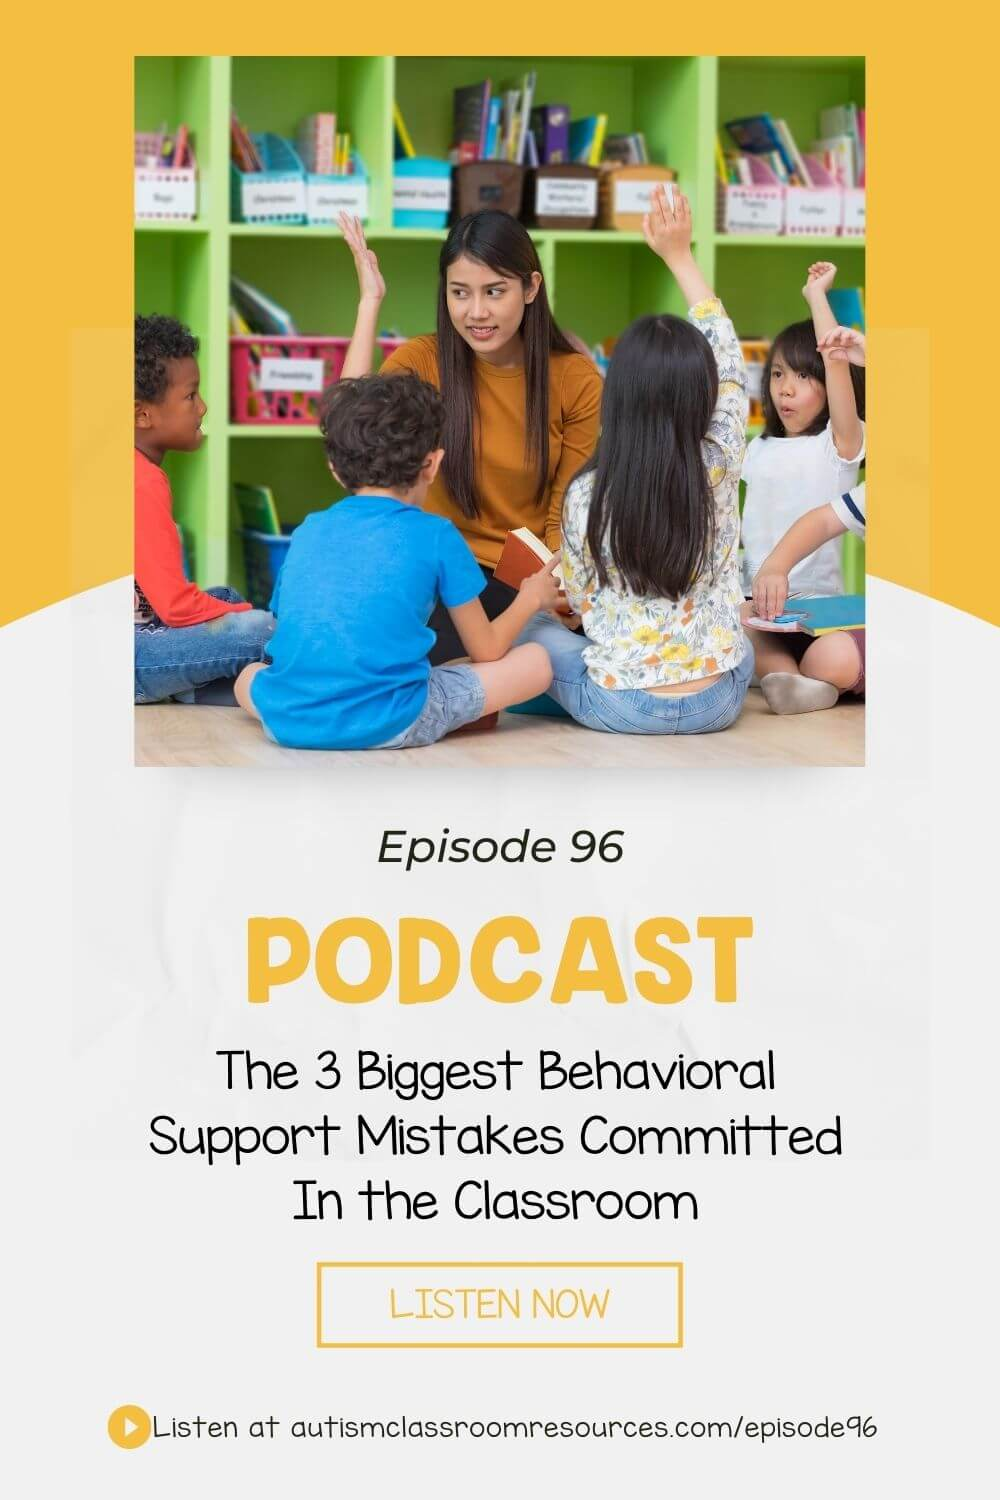 The 3 Biggest Behavioral Support Mistakes Committed In the Classroom=